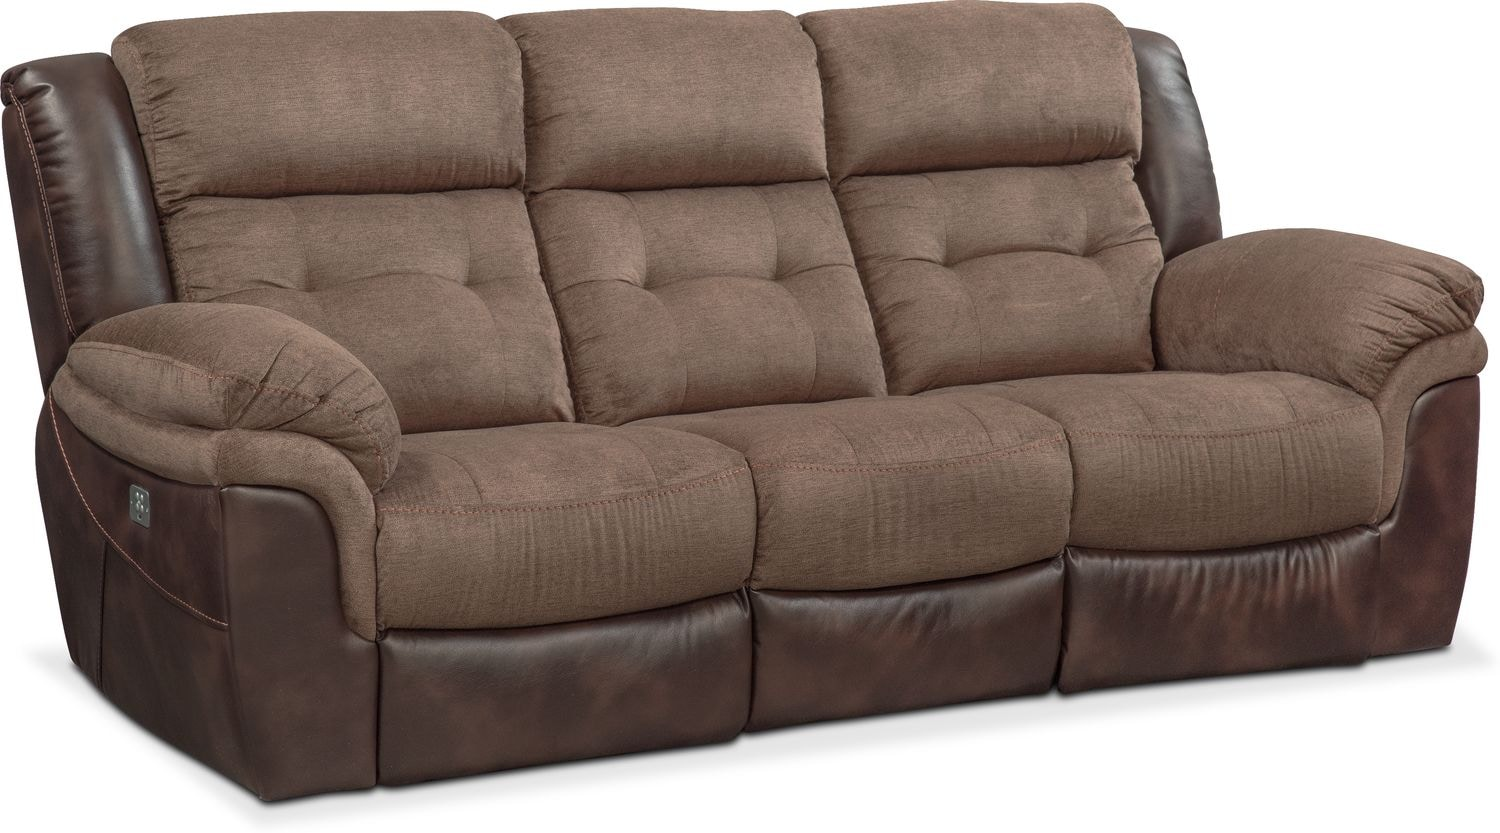 Couches Recliner Sale Leather